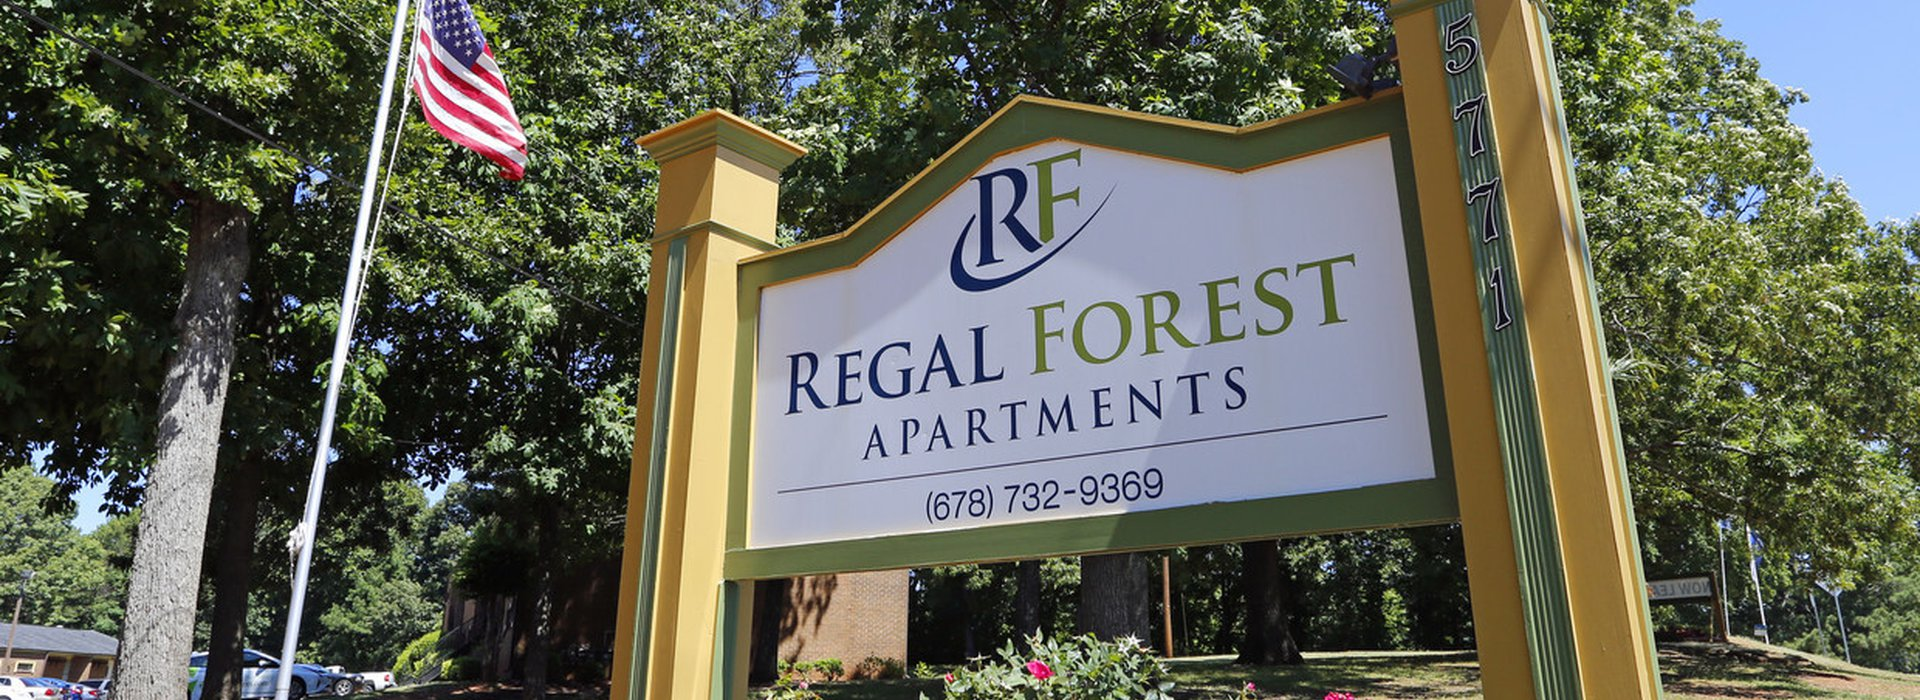 Regal Forest